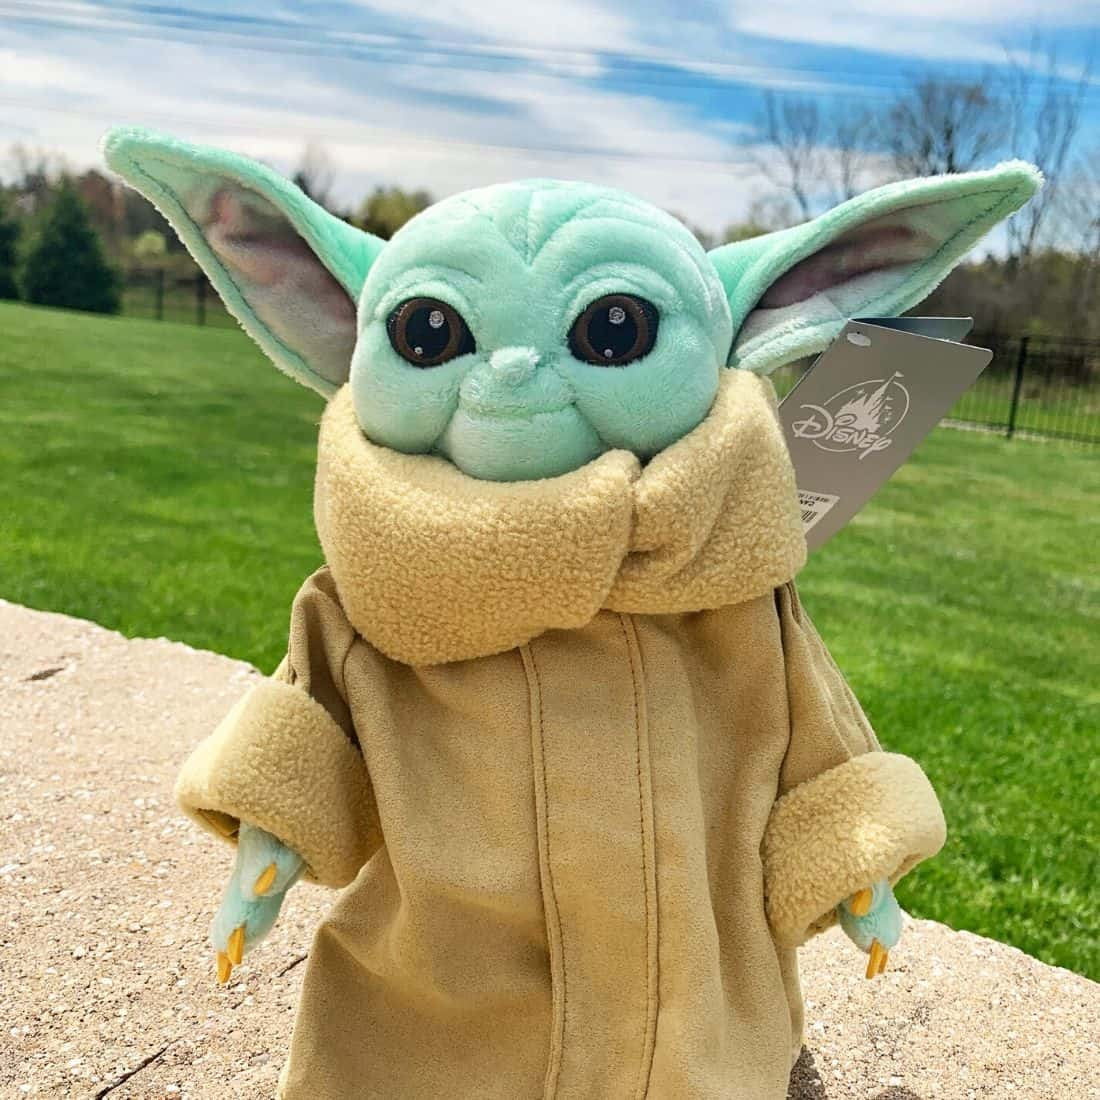 Mint green alien plush doll with tan dress covering